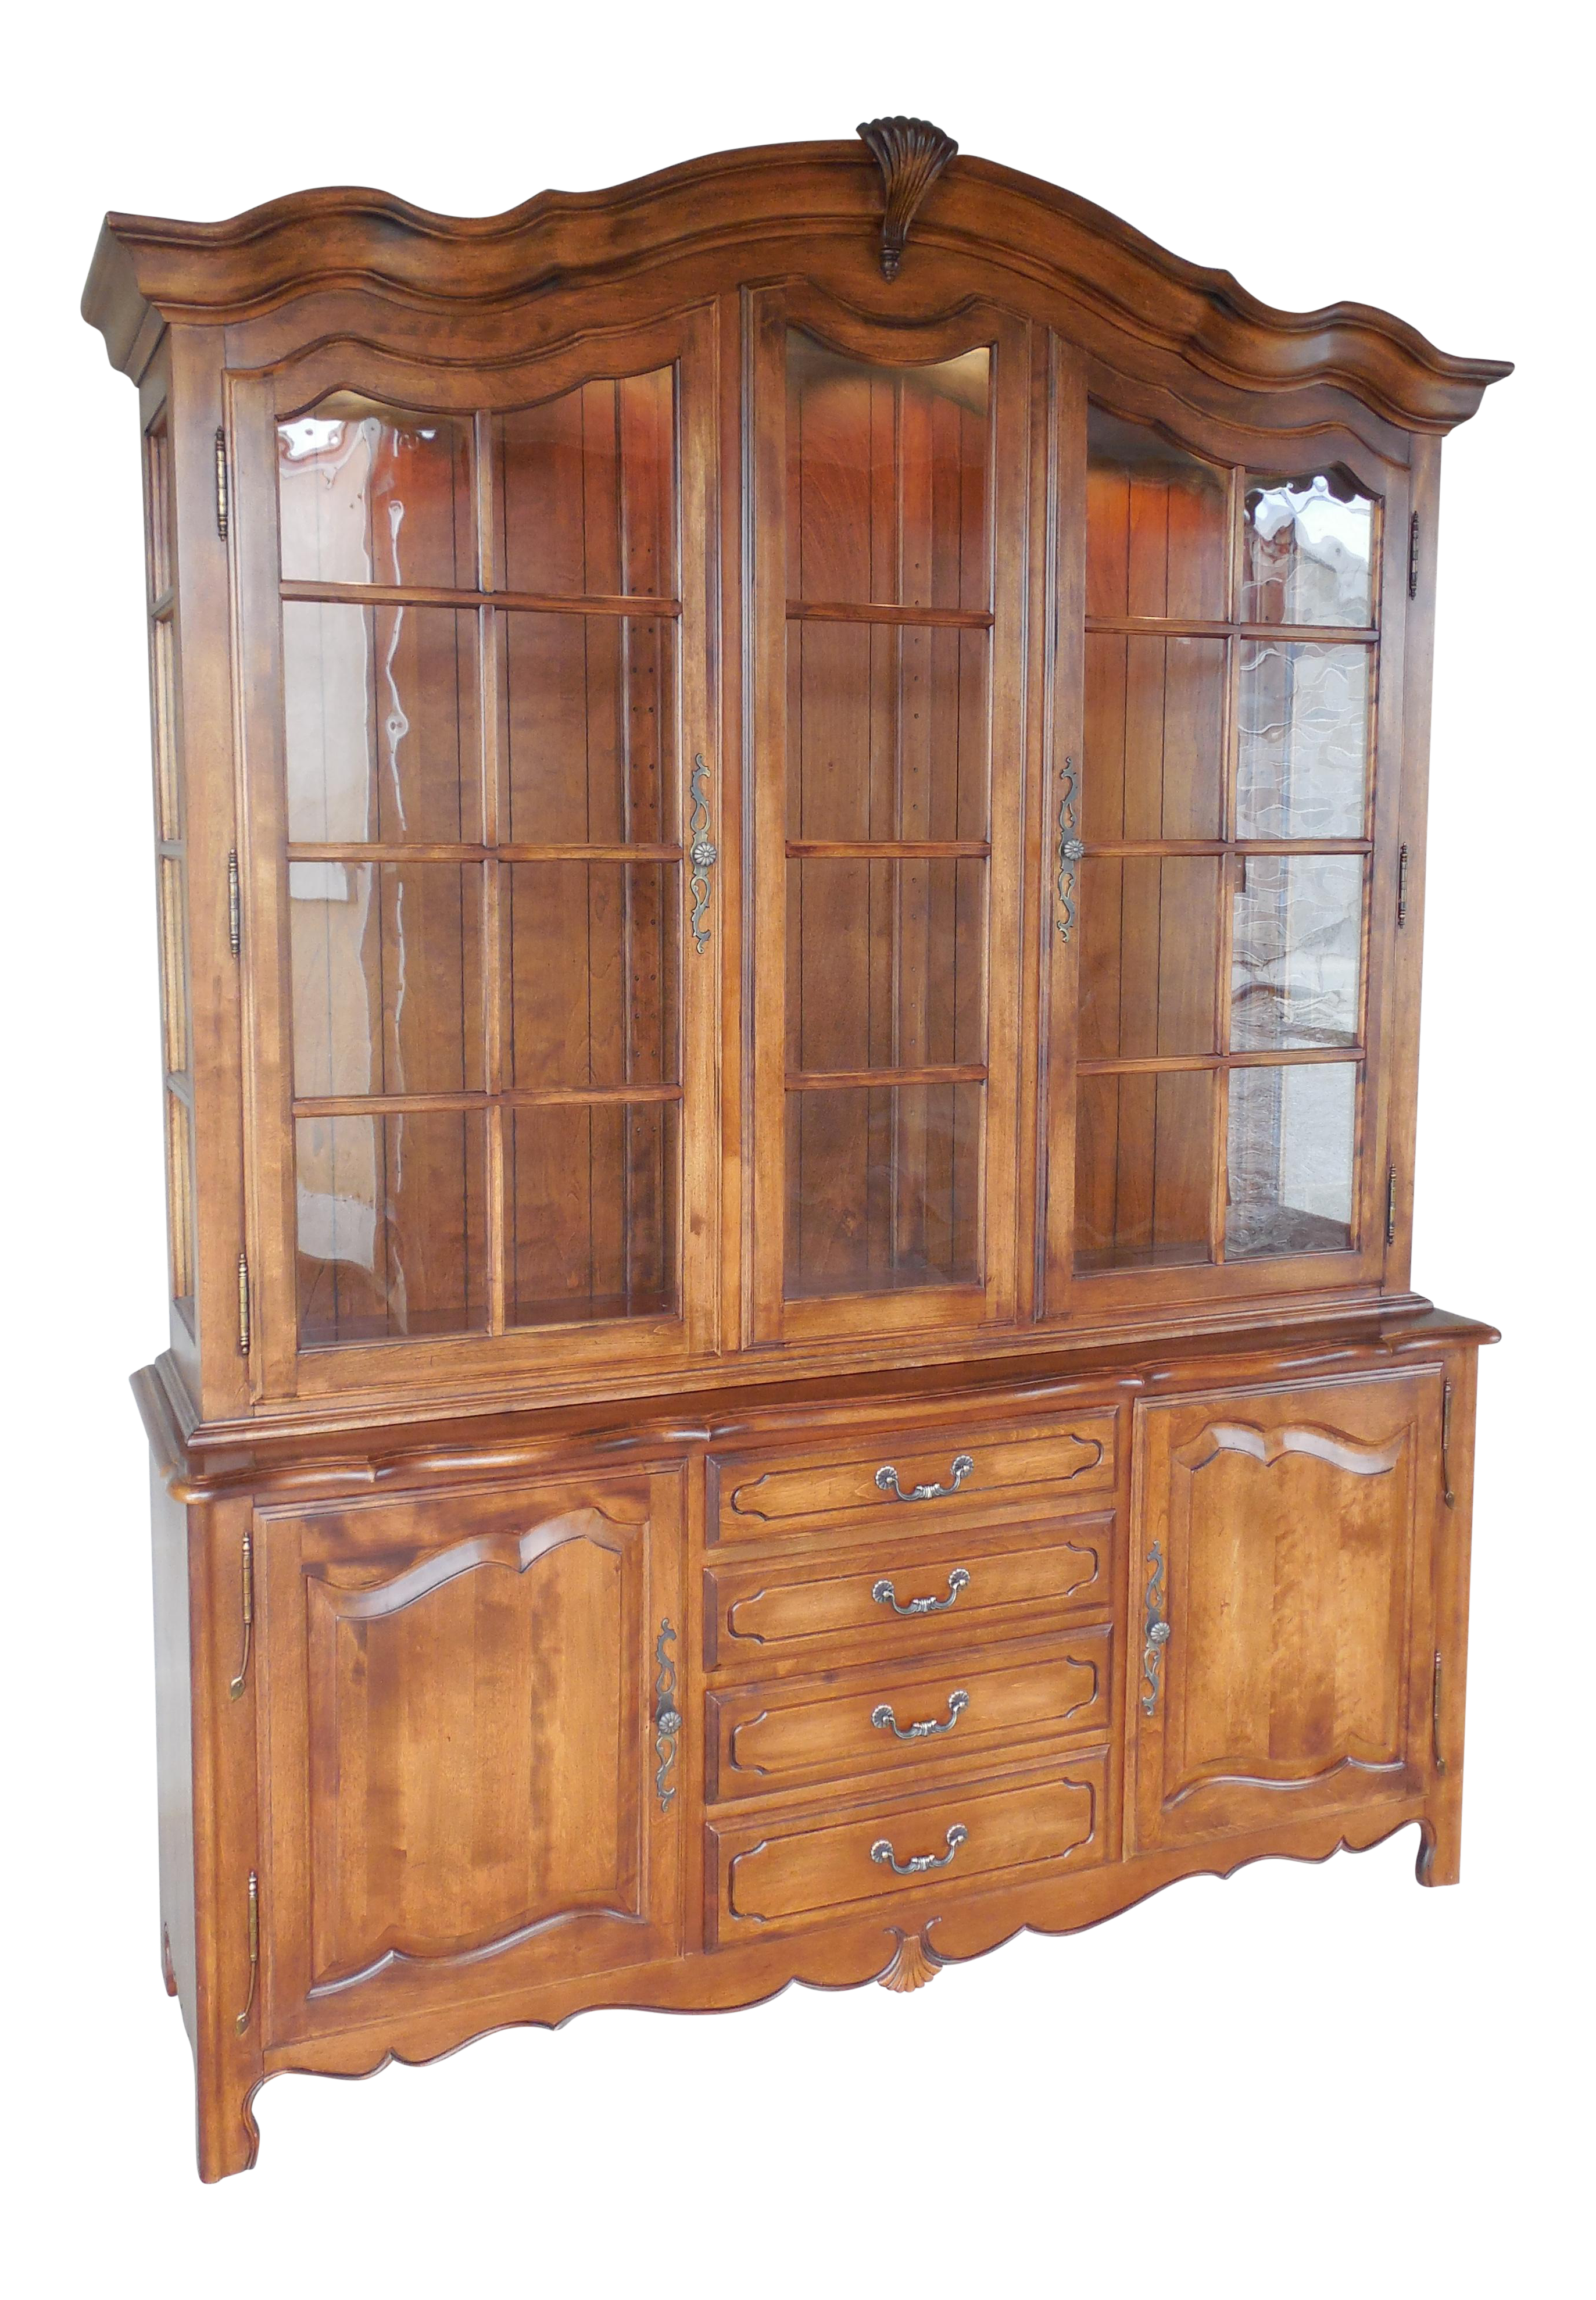 Ethan Allen Country French 2 Pc Lighted China Cabinet 26 6316 Finish 236